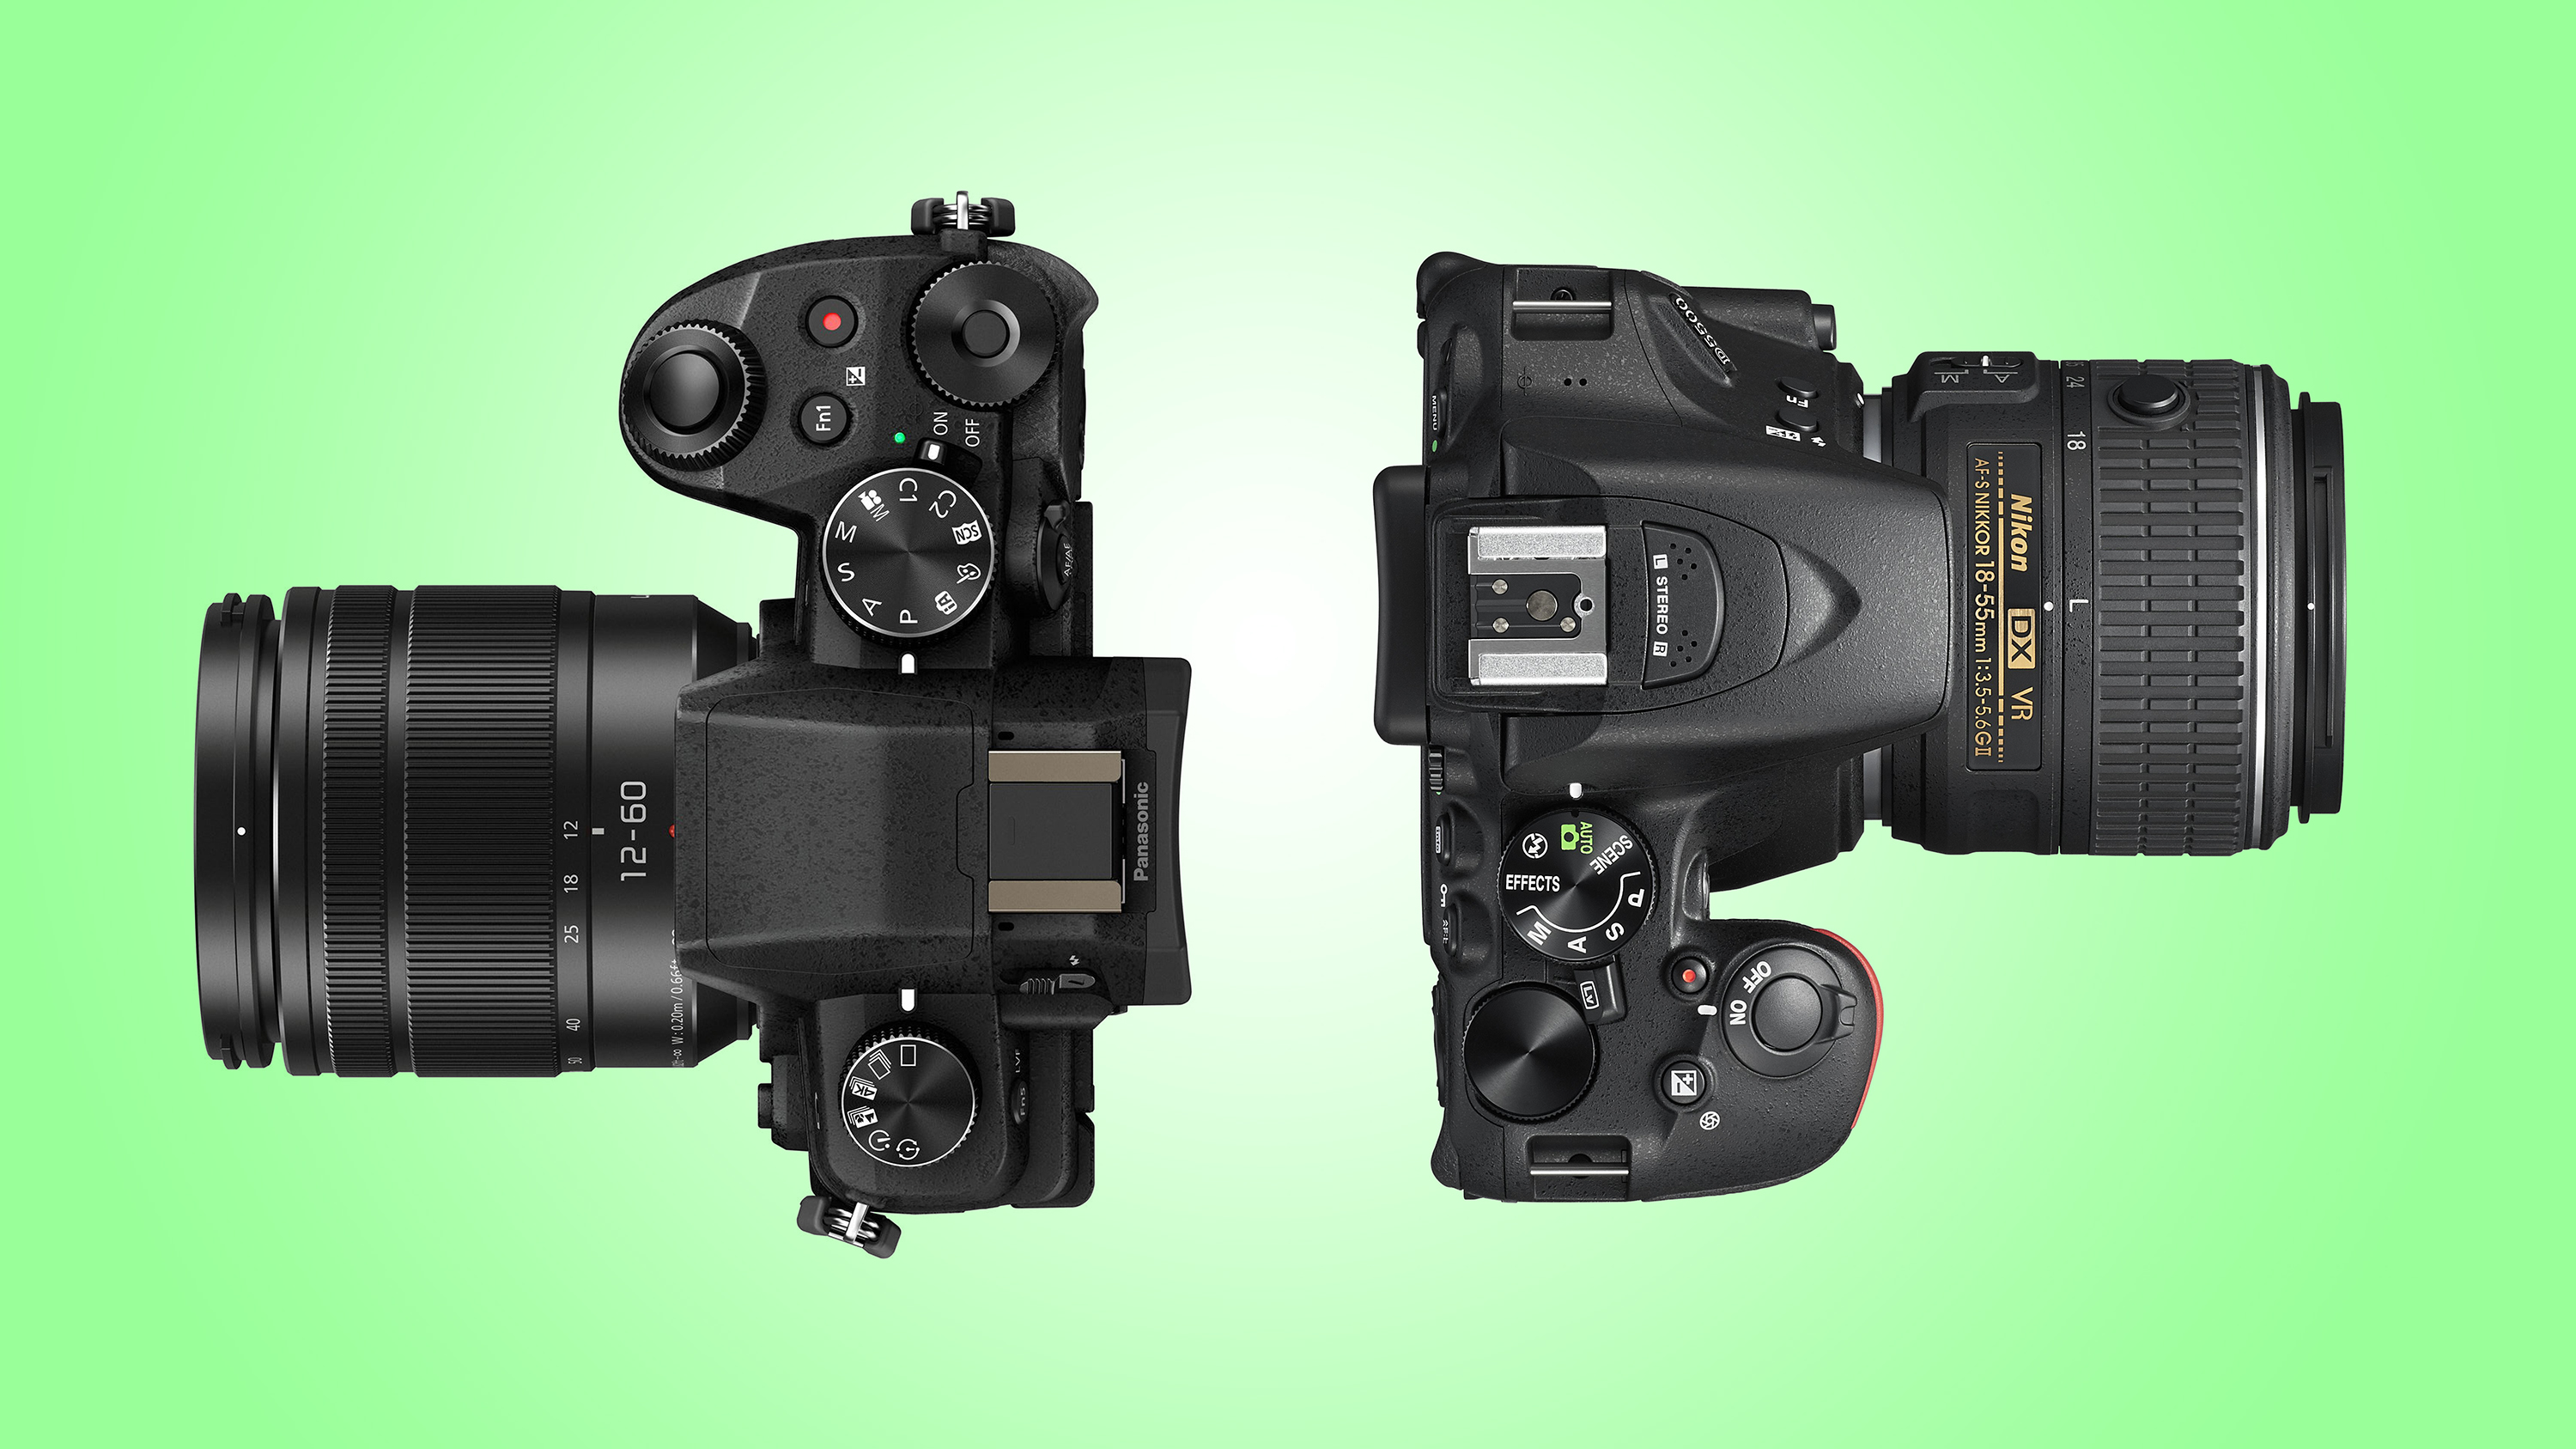 Camera Dslr Quality Compact Camera mirrorless vs dslr cameras 10 key differences techradar